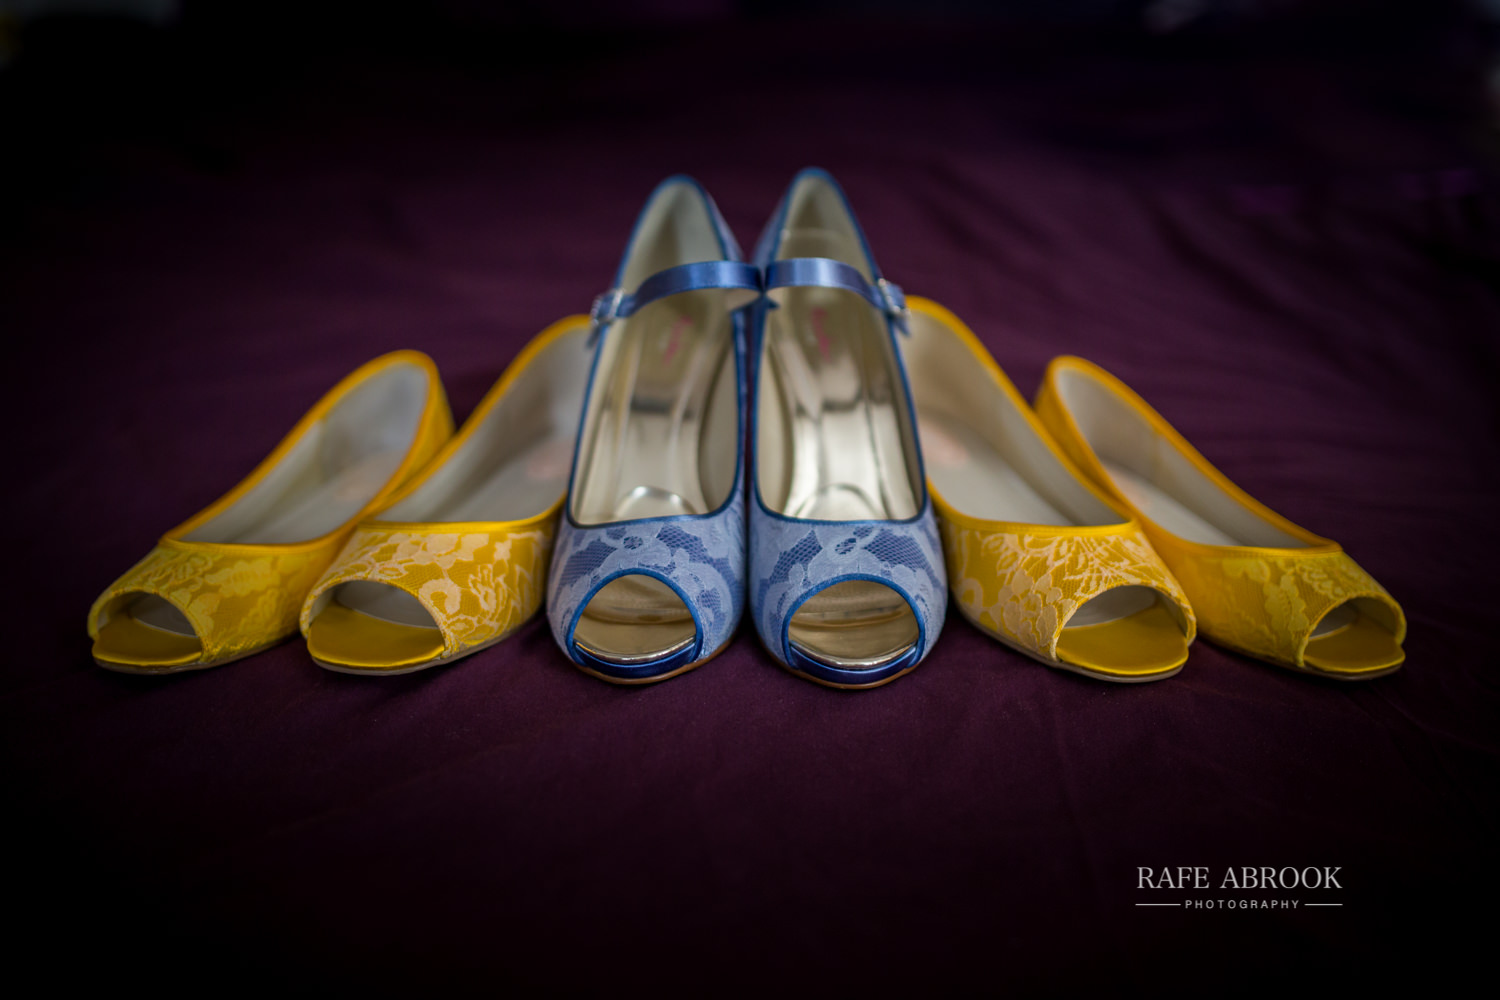 minstrel court wedding royston cambridge hertfordshire wedding photographer-1032.jpg